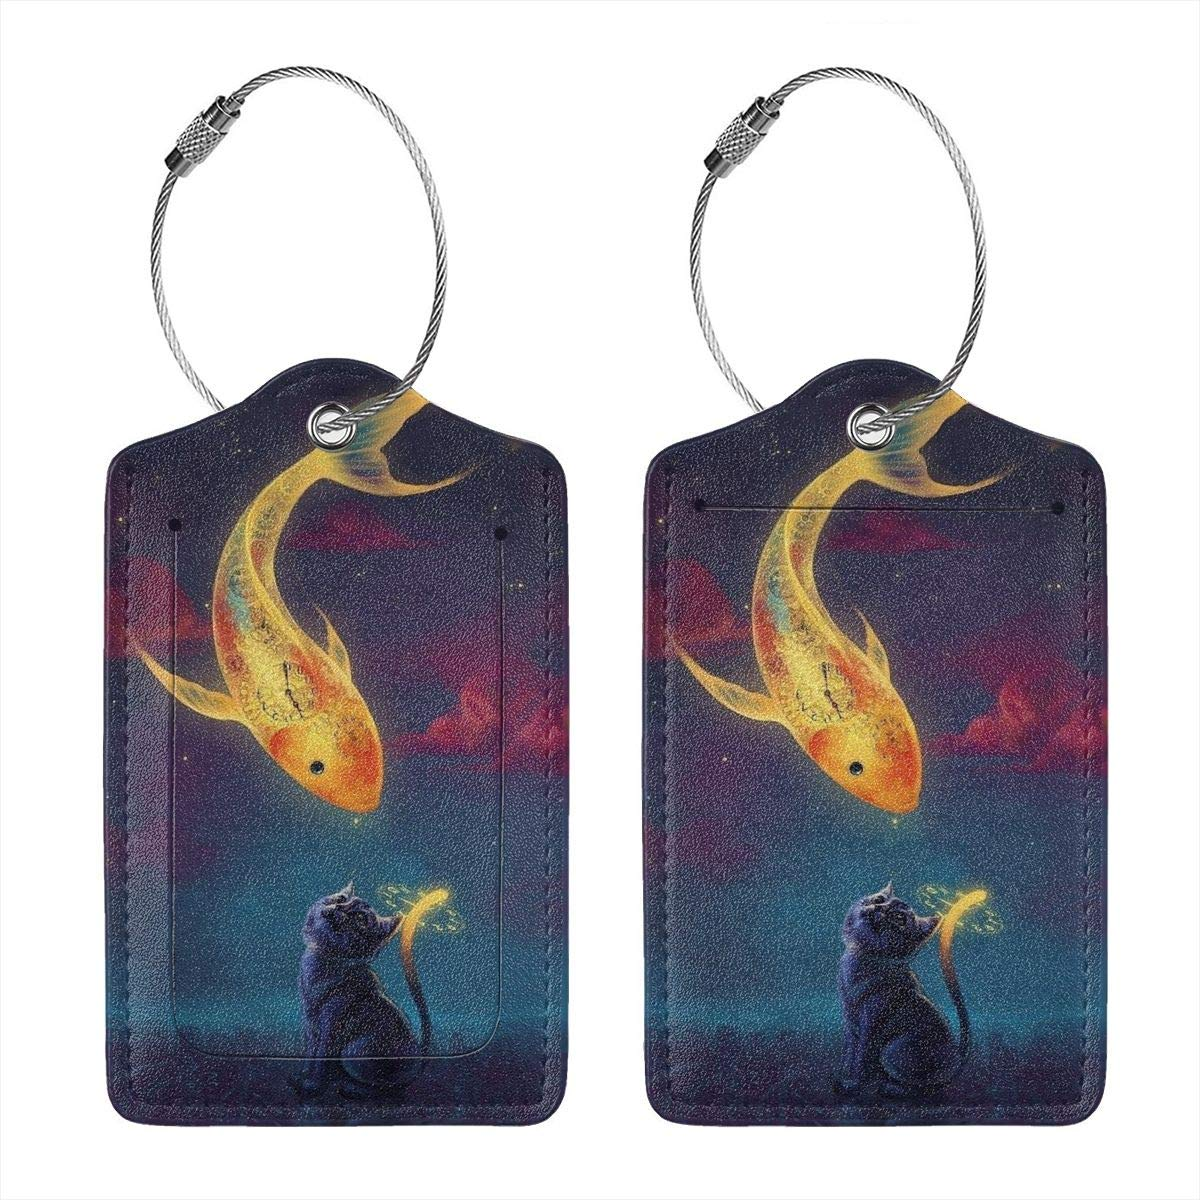 Goldfish And Cat Leather Luggage Tags Personalized Extra Address Cards With Privacy Flap